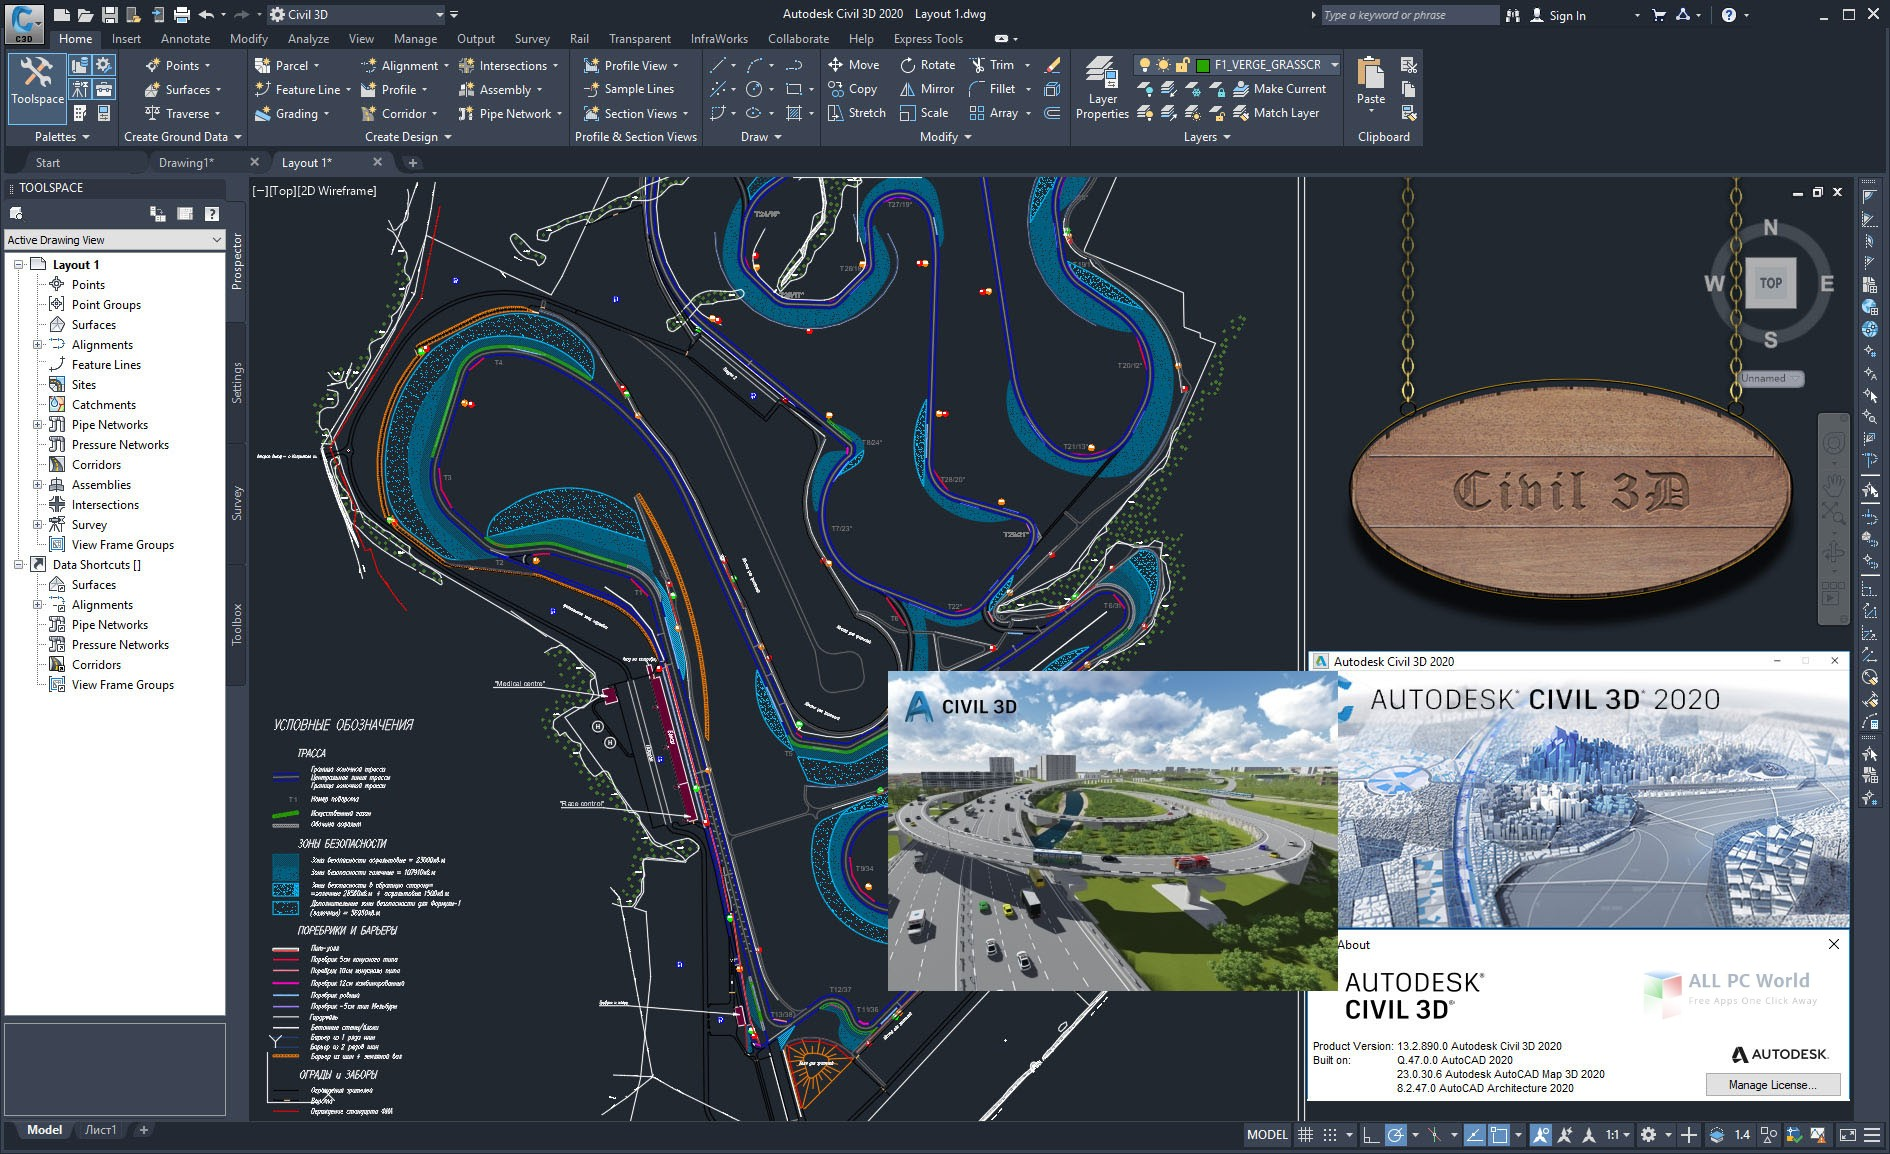 Autodesk AutoCAD Civil 3D 2020 Free Download